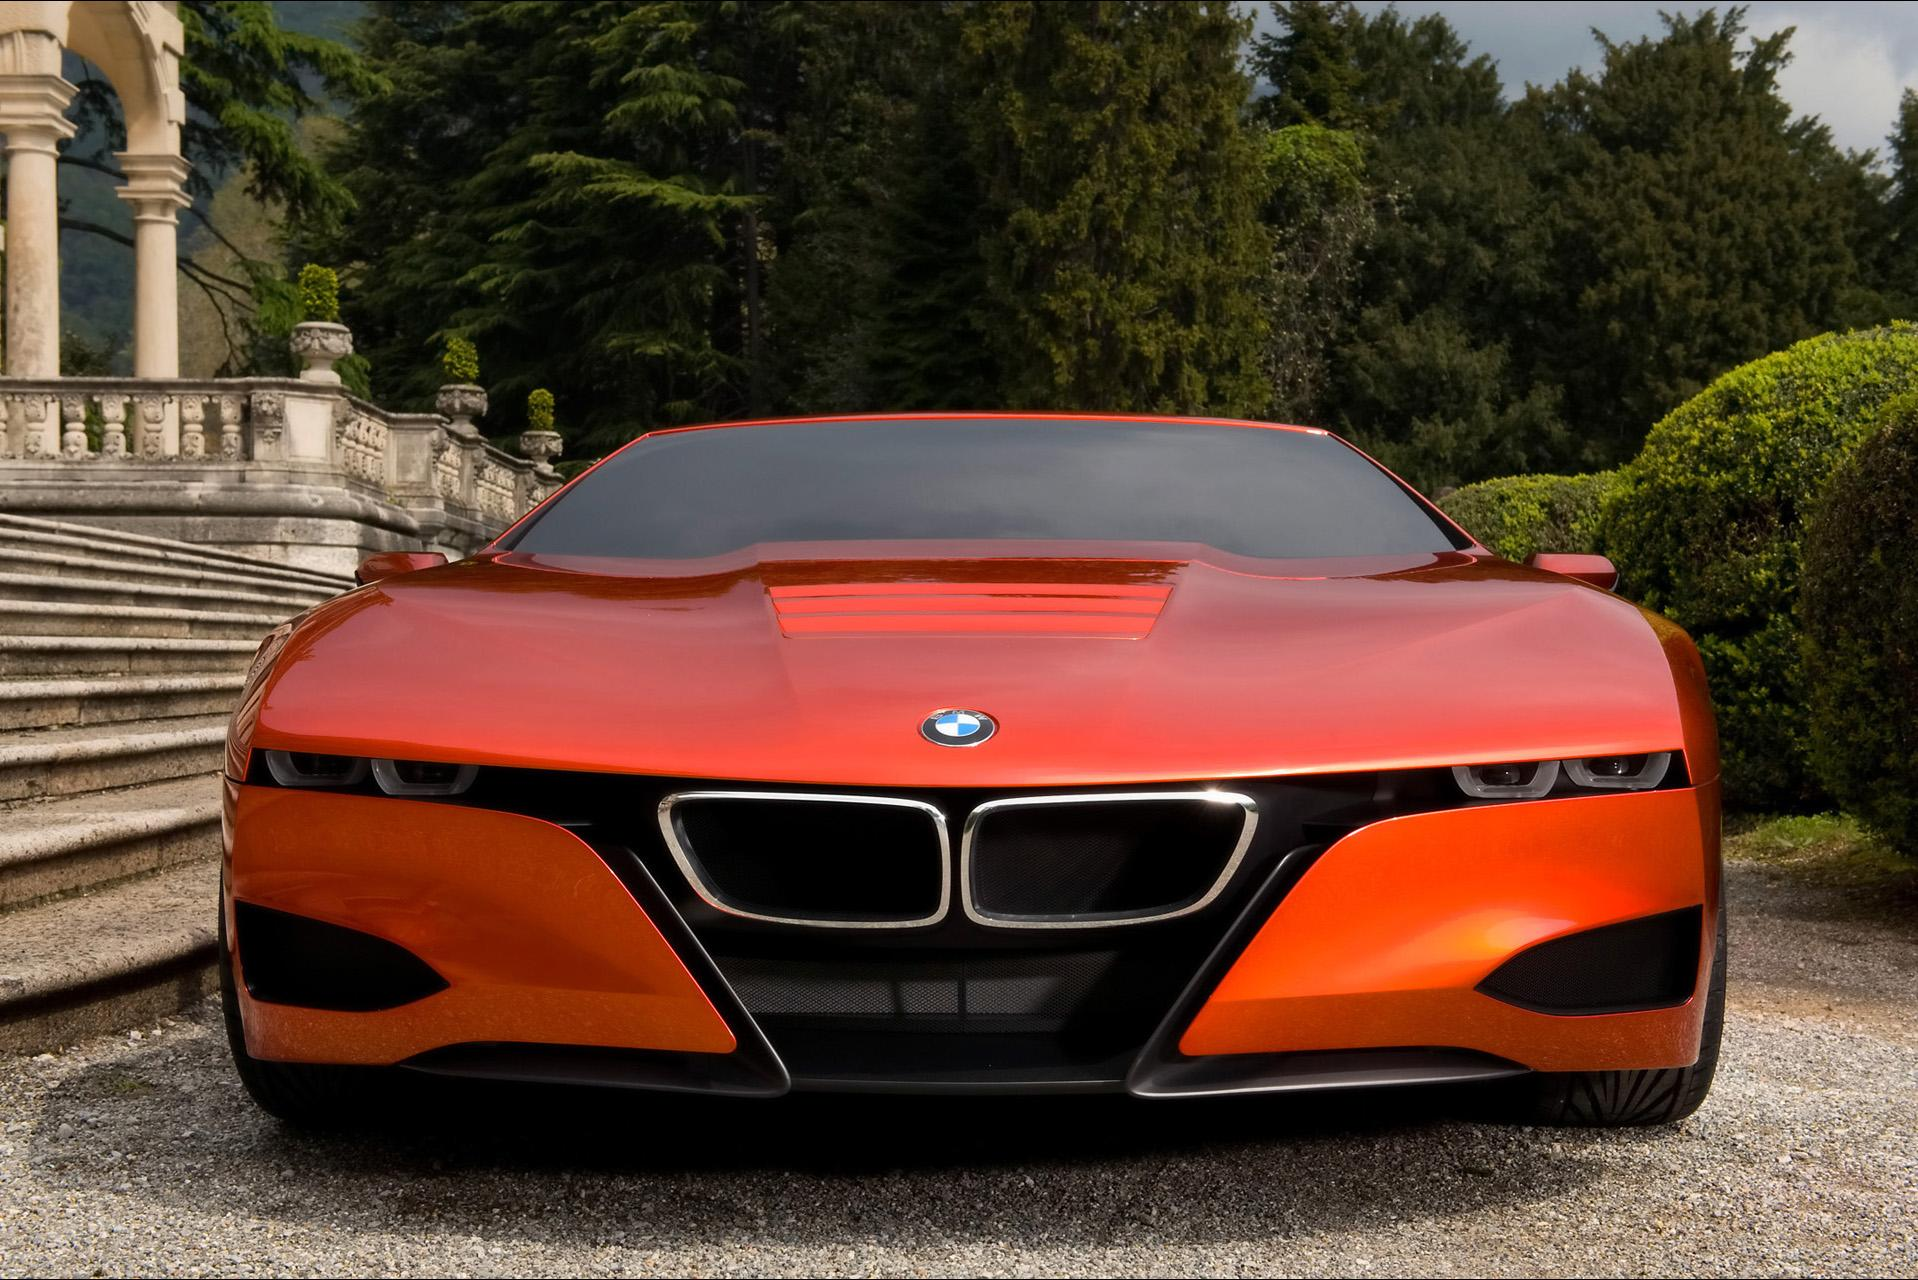 2008 BMW M1 Homage Concept Pictures, News, Research, Pricing